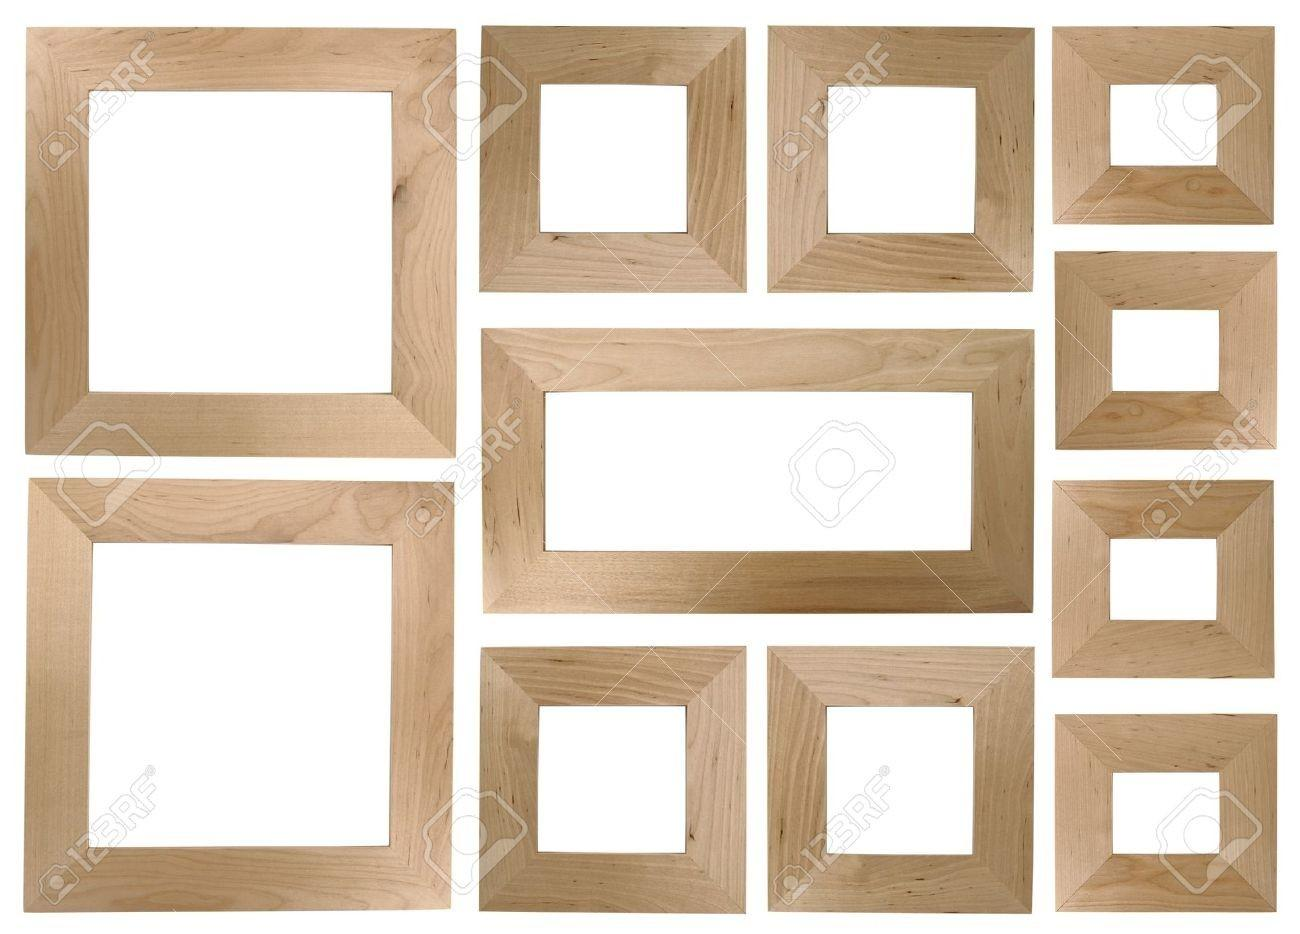 Wooden Frames Collage Personalized